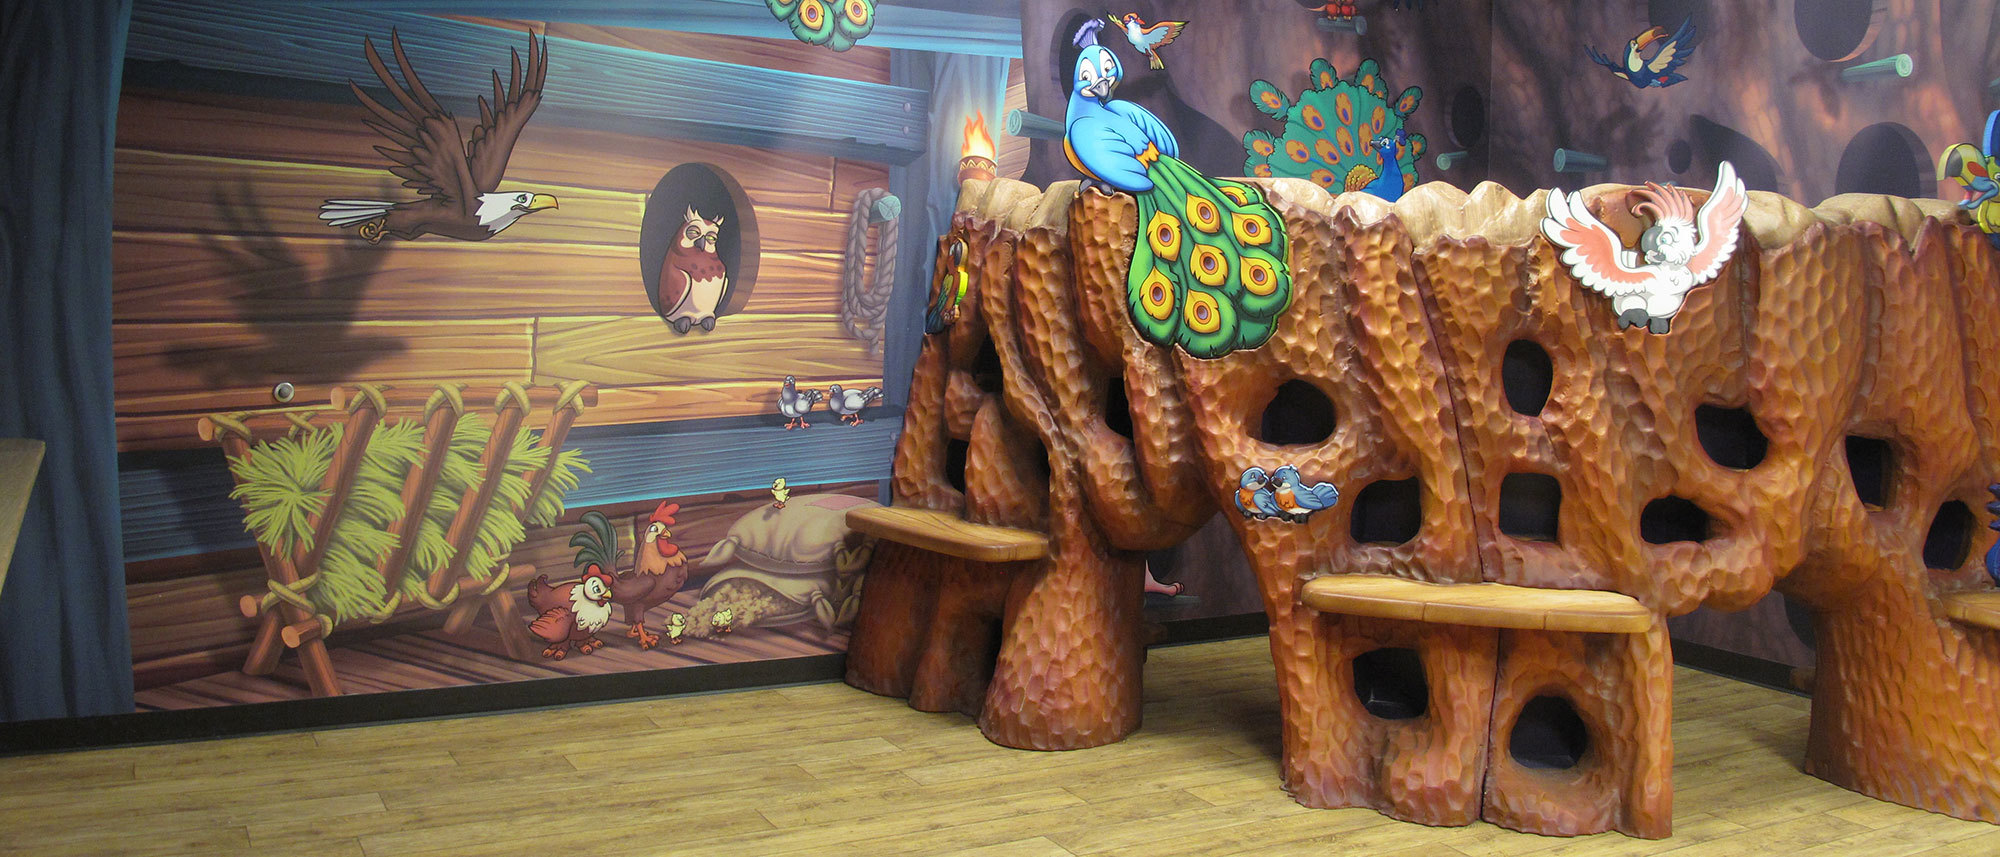 Example of 3D Play Area